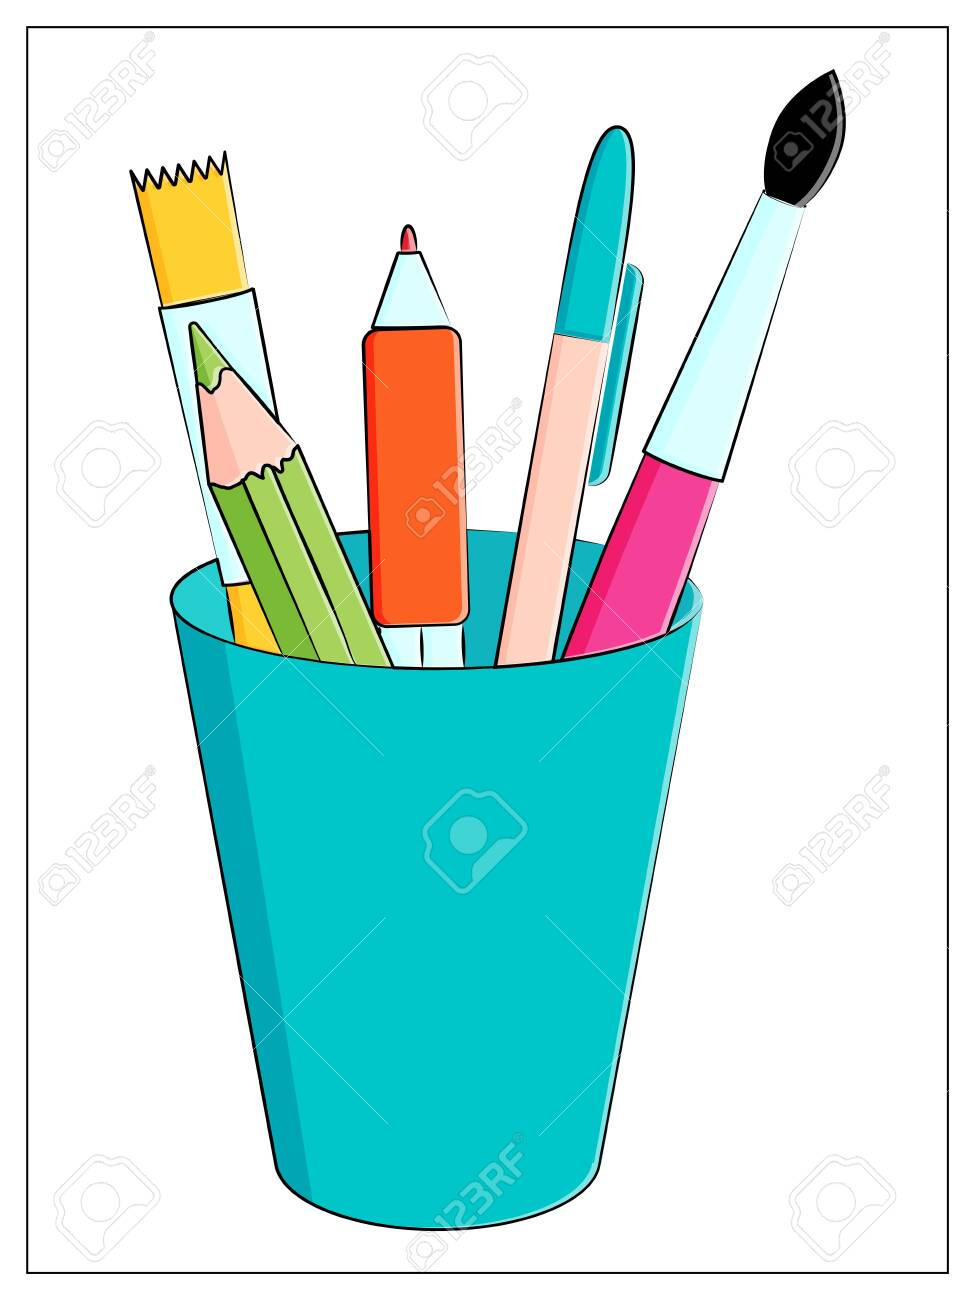 Set of multicolored school supplies. Stationery in a glass. Vector flat illustration with pencils, pen and brushes for drawing - 151558073